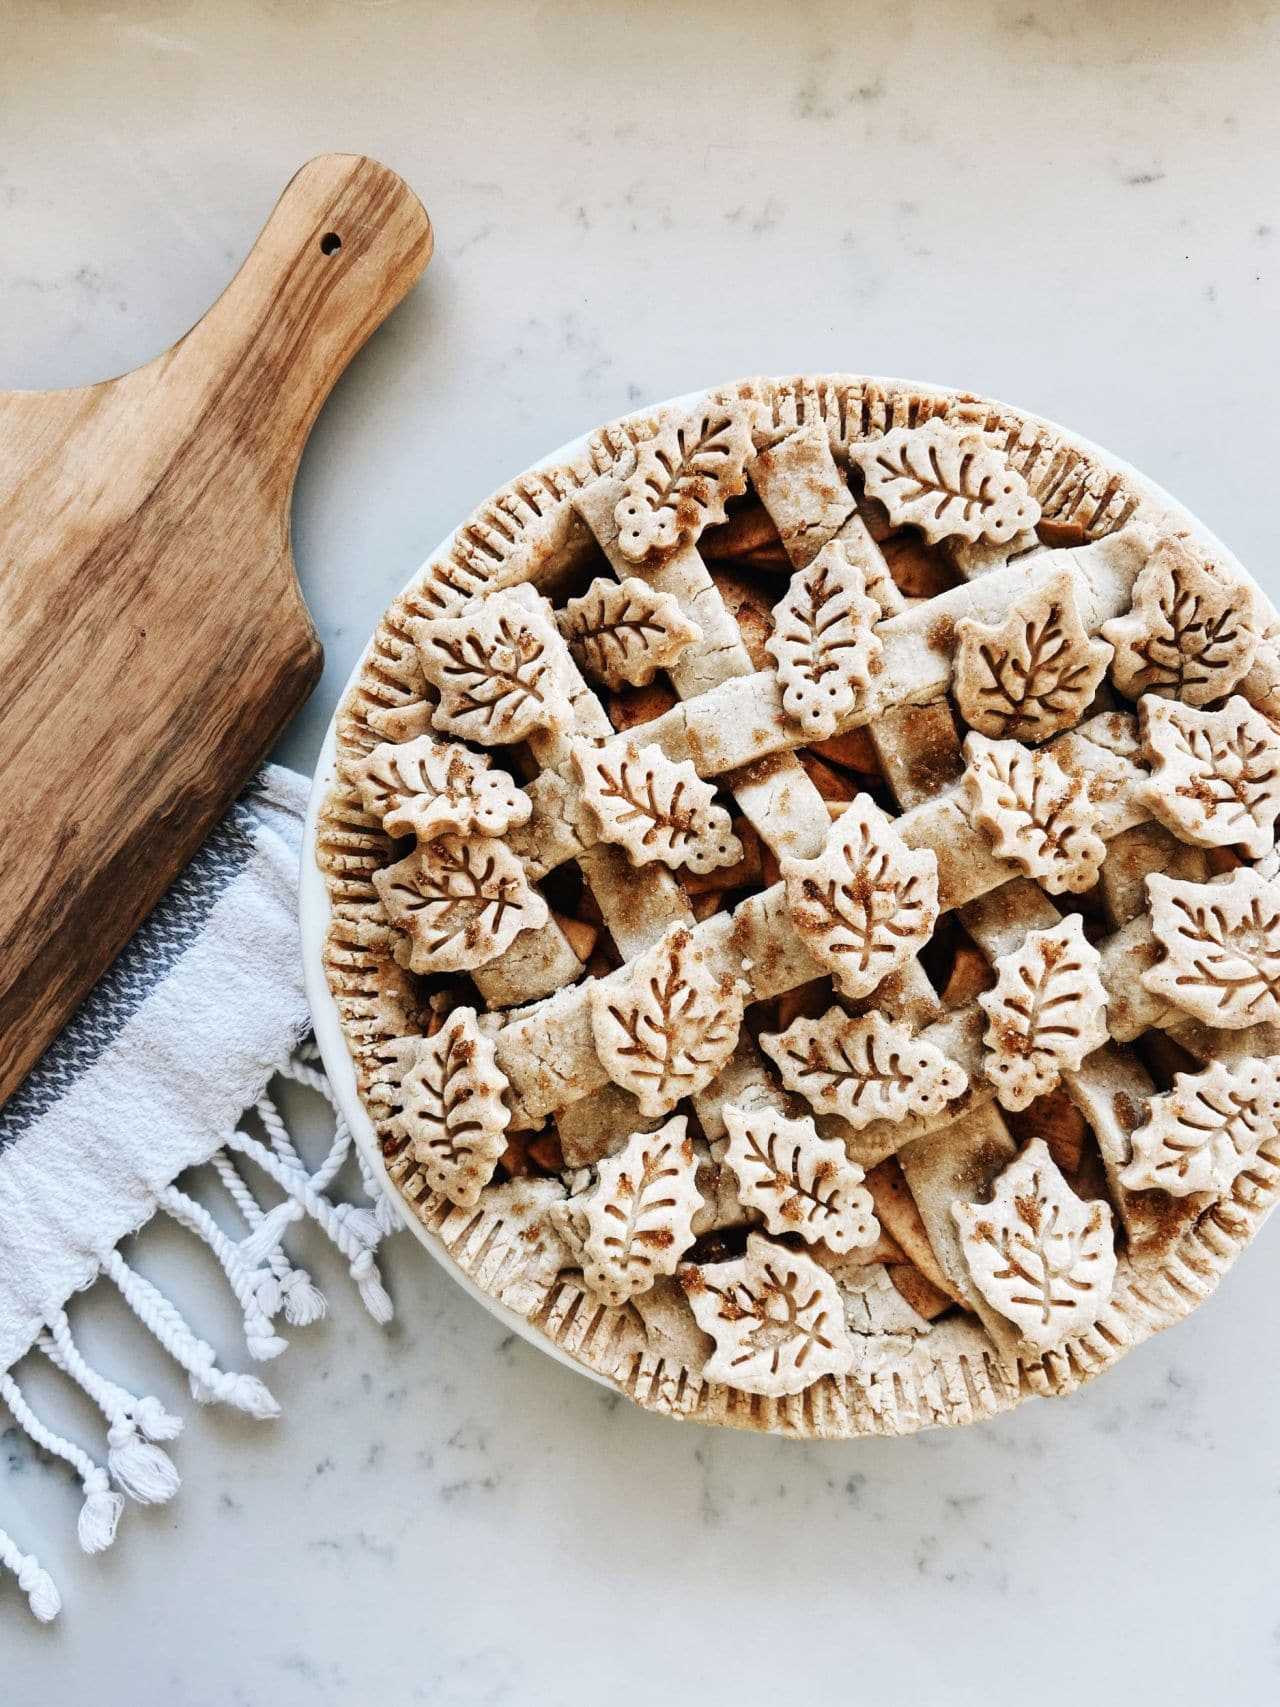 vegan-gluten-free-apple-pie-thanksgiving-dessert-lattice-leaf-crust-cutout